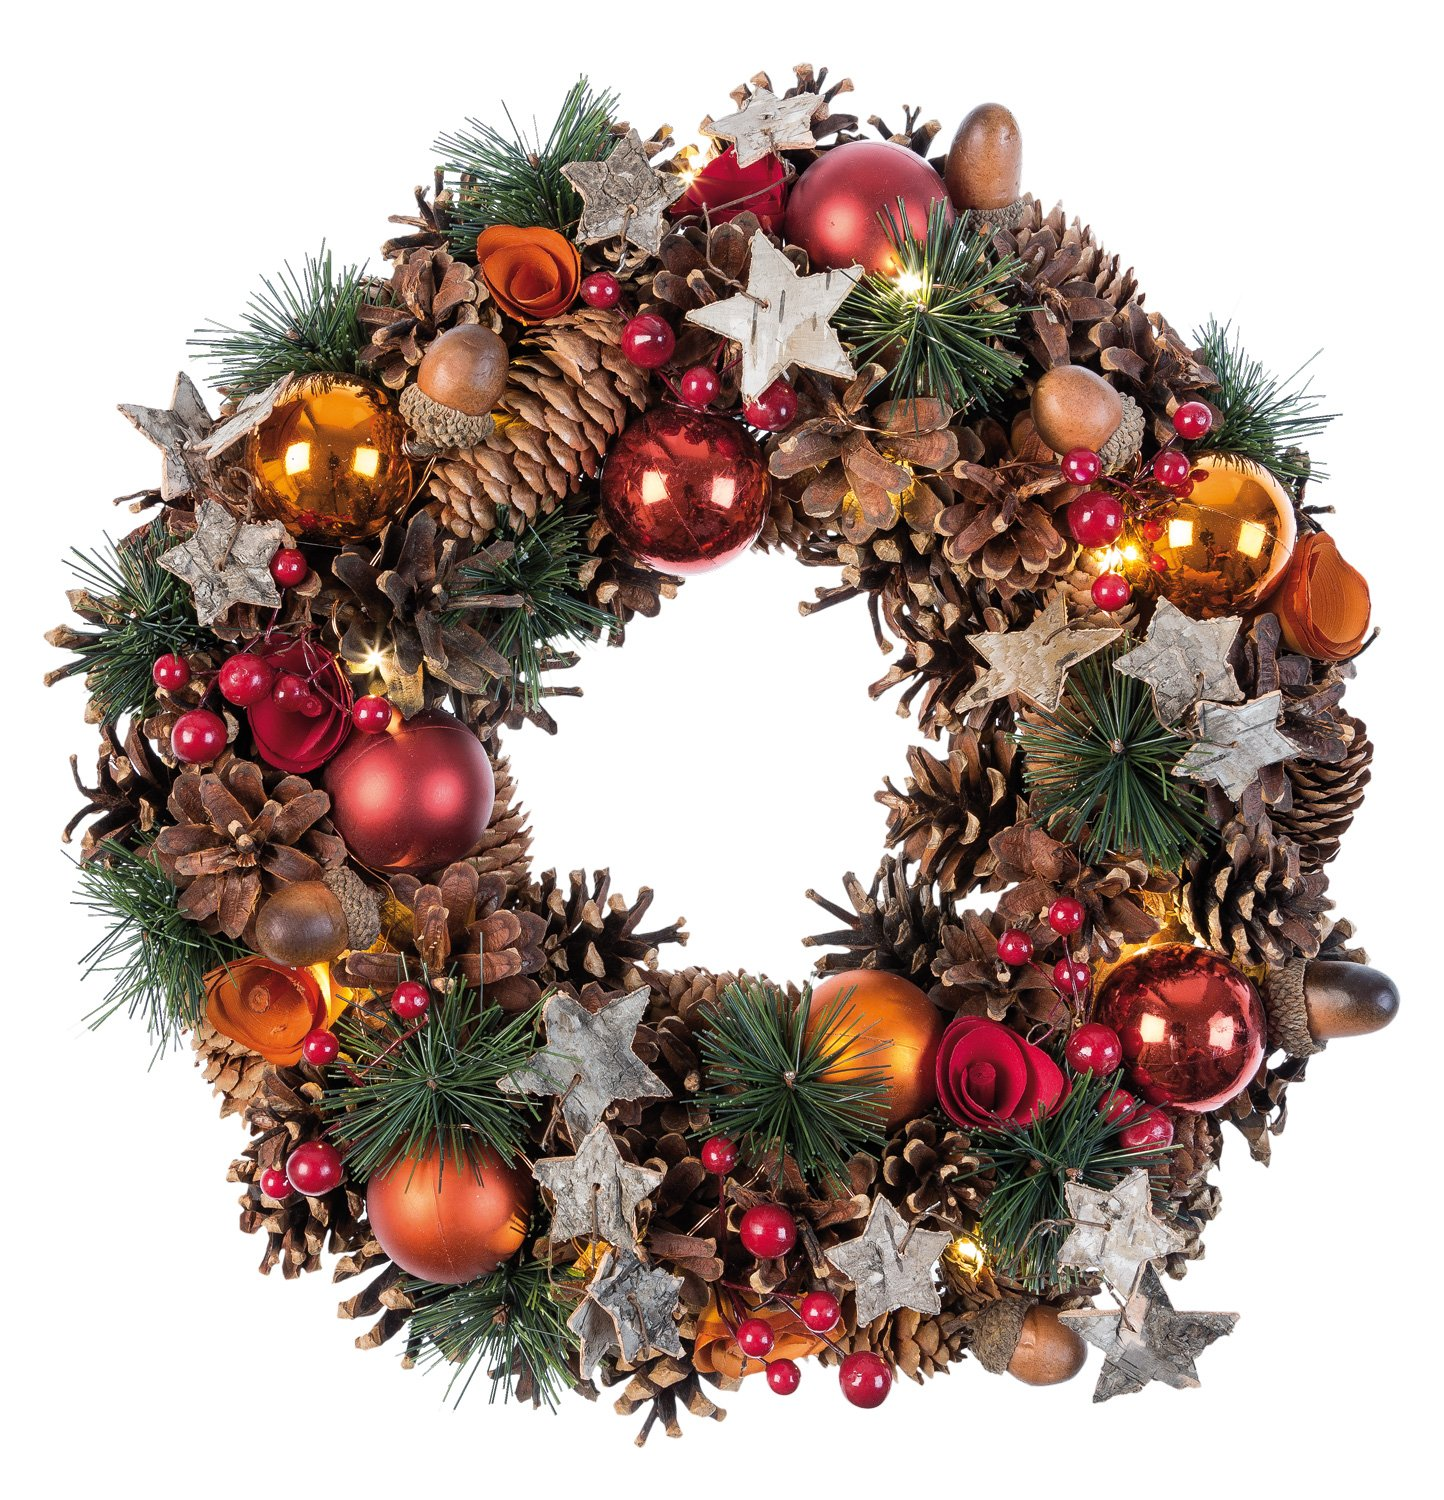 Idena 8585271 Christmas Wreath 28 cm with 10 LEDs Battery Operated Warm White